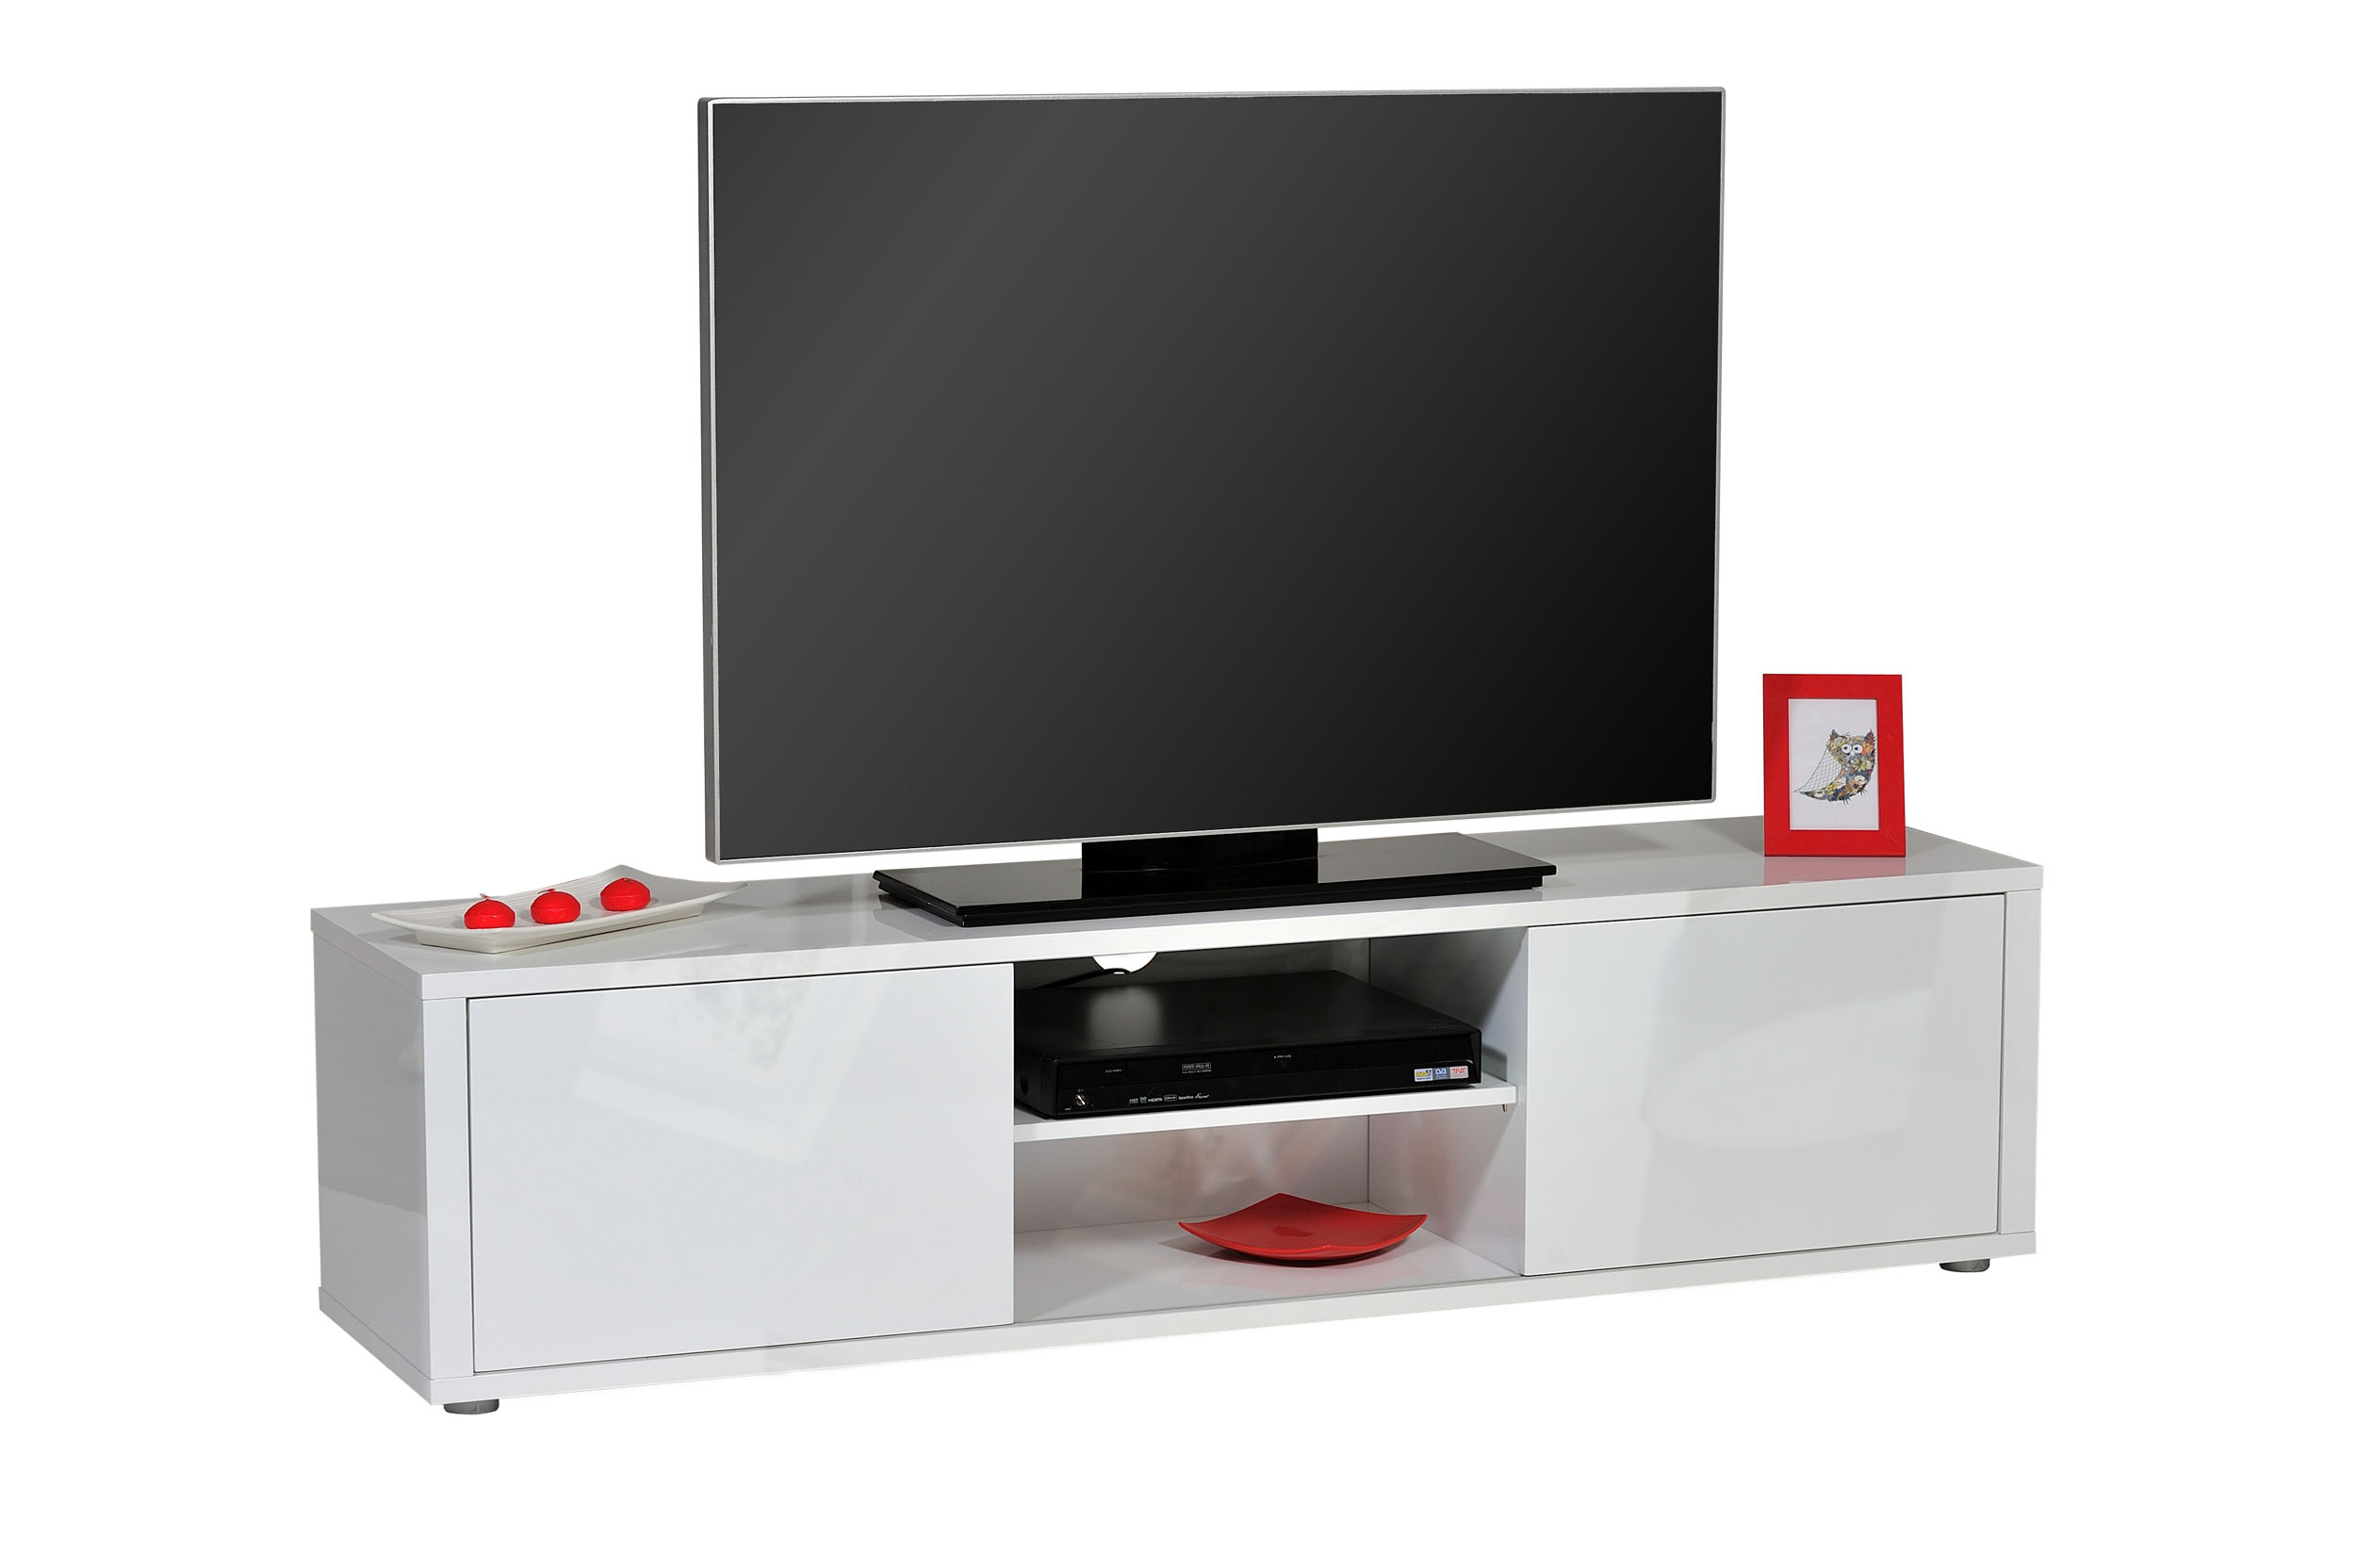 tv lowboard unterschrank ablage hifi regal weiss schwarz. Black Bedroom Furniture Sets. Home Design Ideas